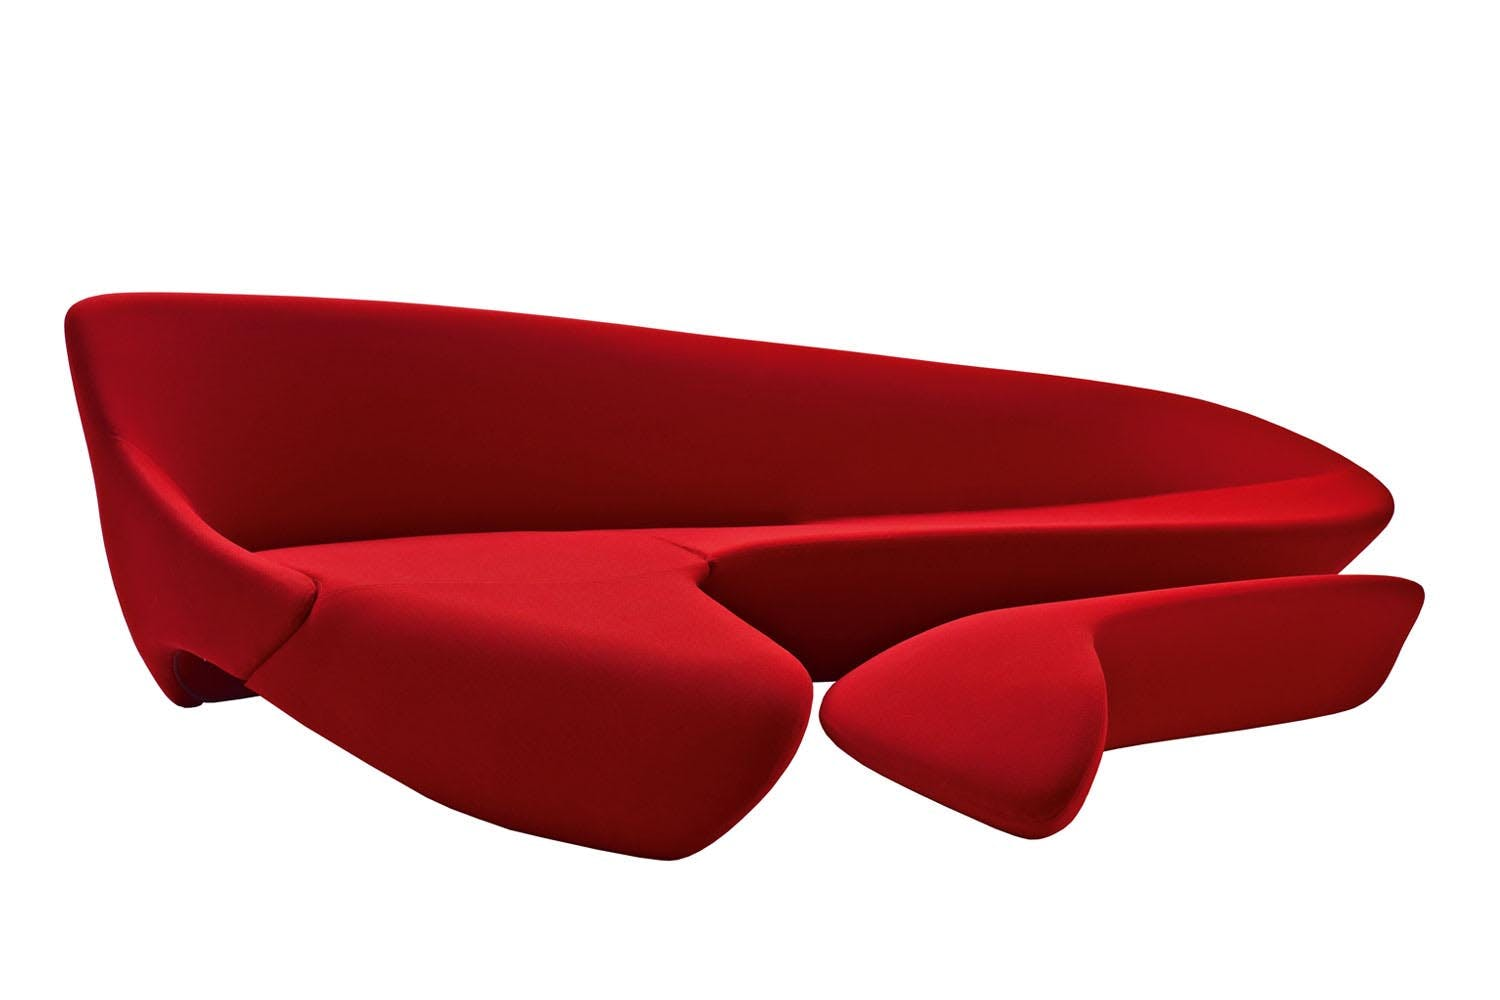 Moon System Sofa by Zaha Hadid for B&B Italia | Space Furniture on chaise recliner chair, chaise furniture, chaise sofa sleeper,